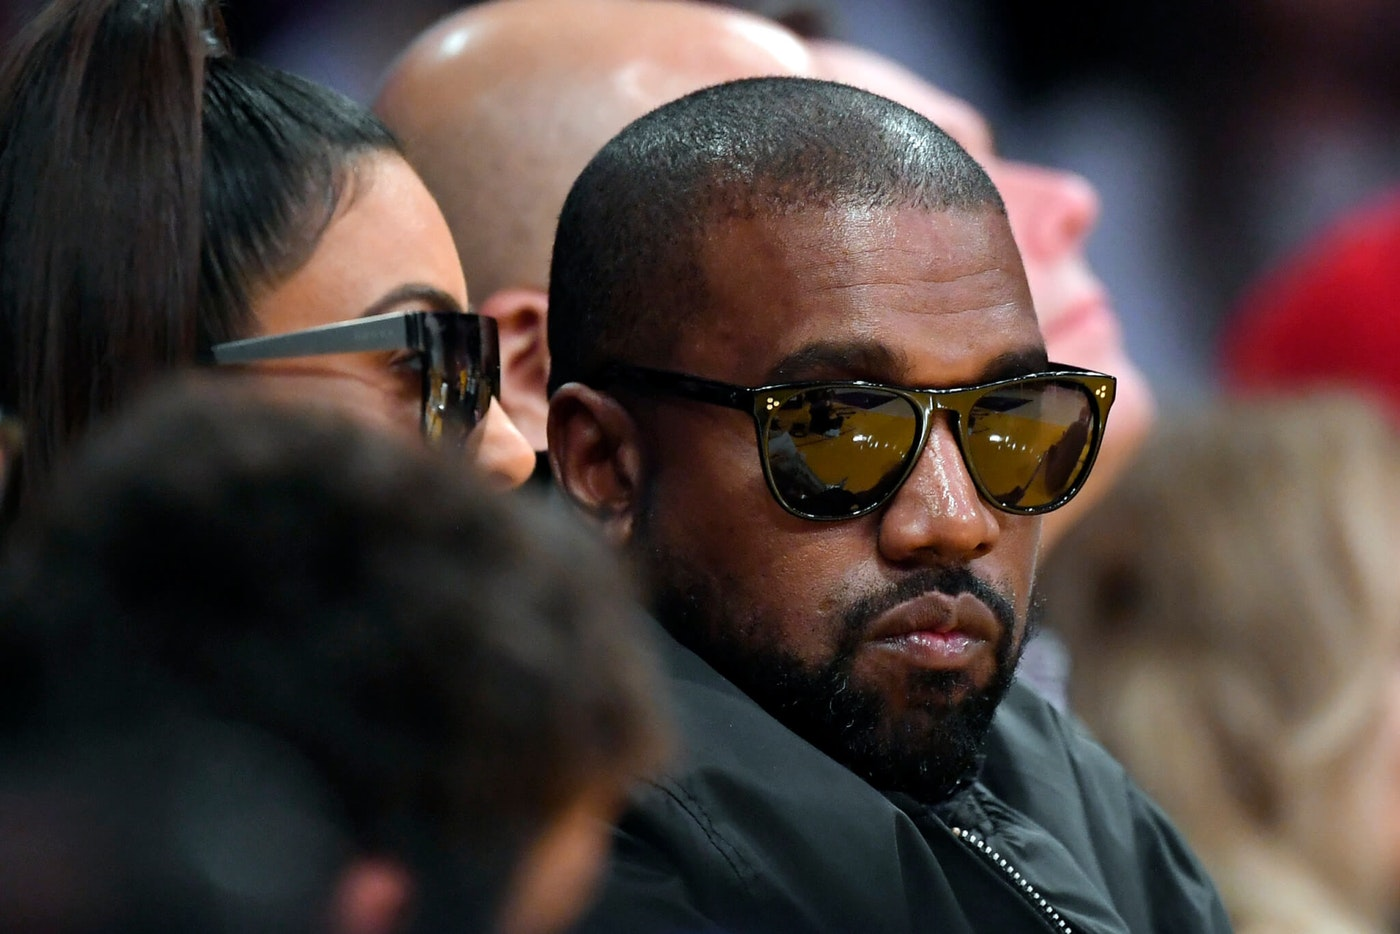 Kim Kardashian, left, and rapper Kanye West watch during the second half of an NBA basketball game between the Los Angeles Lakers and the Cleveland Cavaliers, Monday, Jan. 13, 2020, in Los Angeles. The Lakers won 128-99. (AP Photo/Mark J. Terrill)